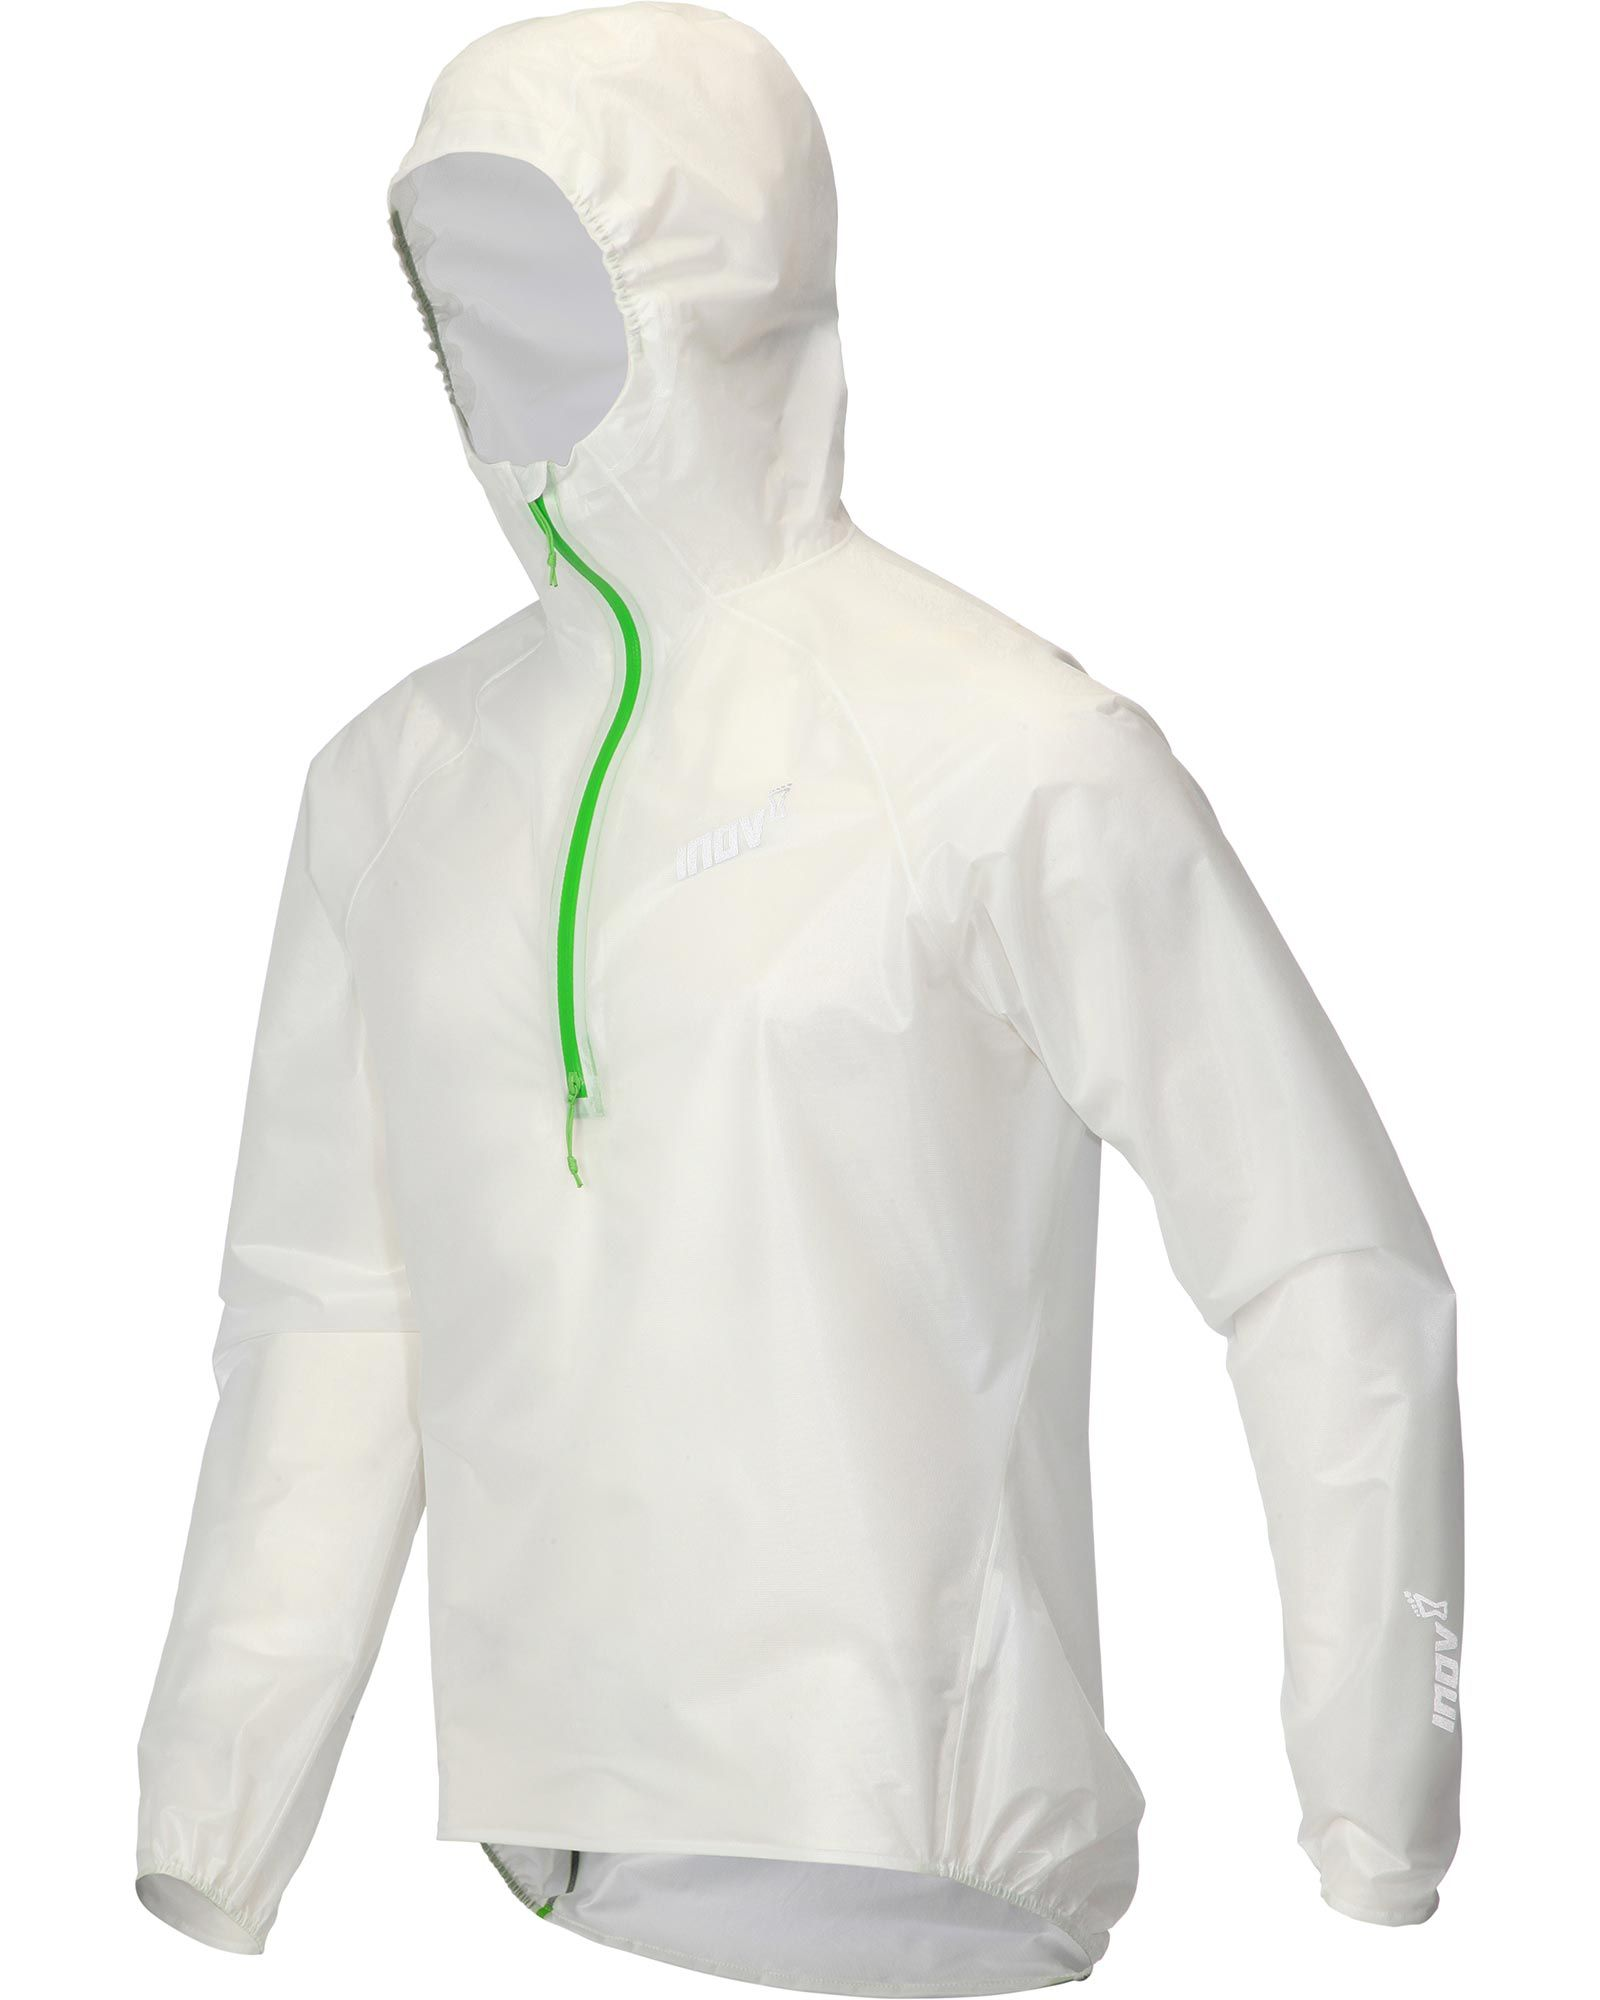 Inov8 Ultrashell Half Zip Jacket - Waterproof, Lightweight & Durable